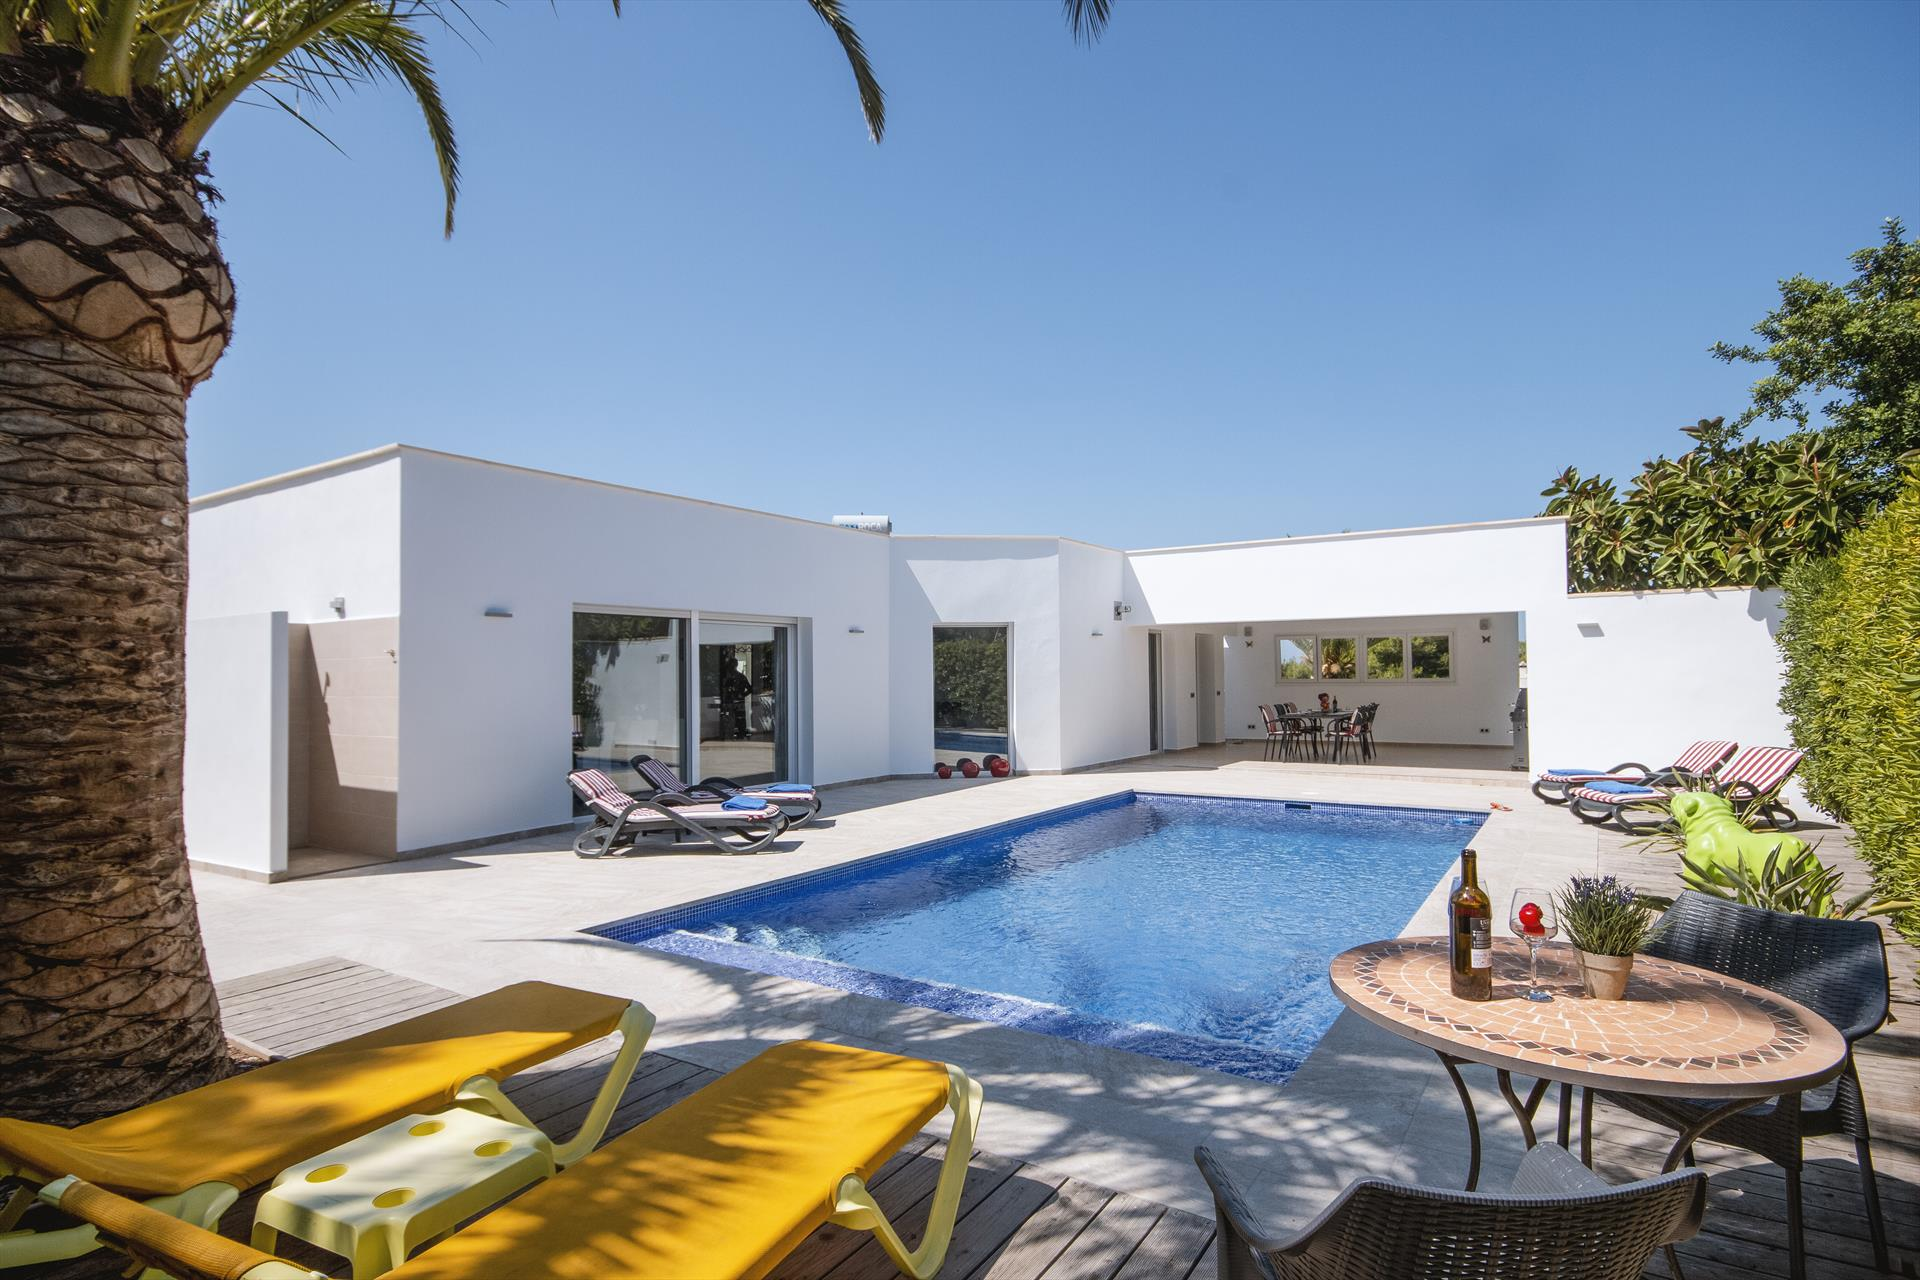 Mercedes, Modern and comfortable villa  with private pool in Javea, on the Costa Blanca, Spain for 4 persons...